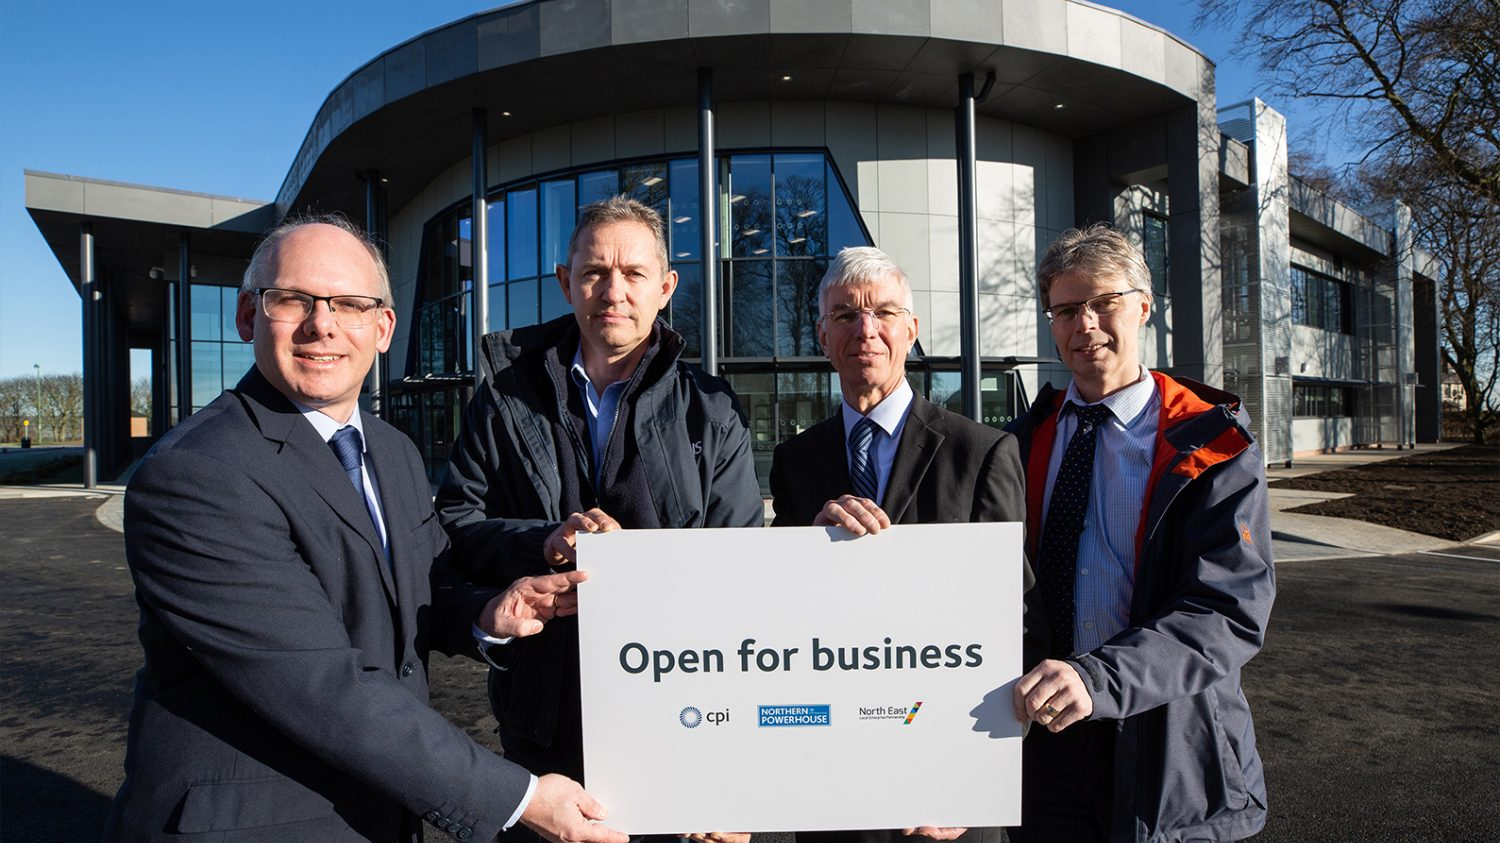 Dr Tom Harvey, Healthcare Photonics Lead at CPI; with Bob Preston, CPI Project Manager; Dr John Cocker, Business Unit Director - Printable Electronics at CPI; and Ray Browning, Programme Manager at the North East LEP